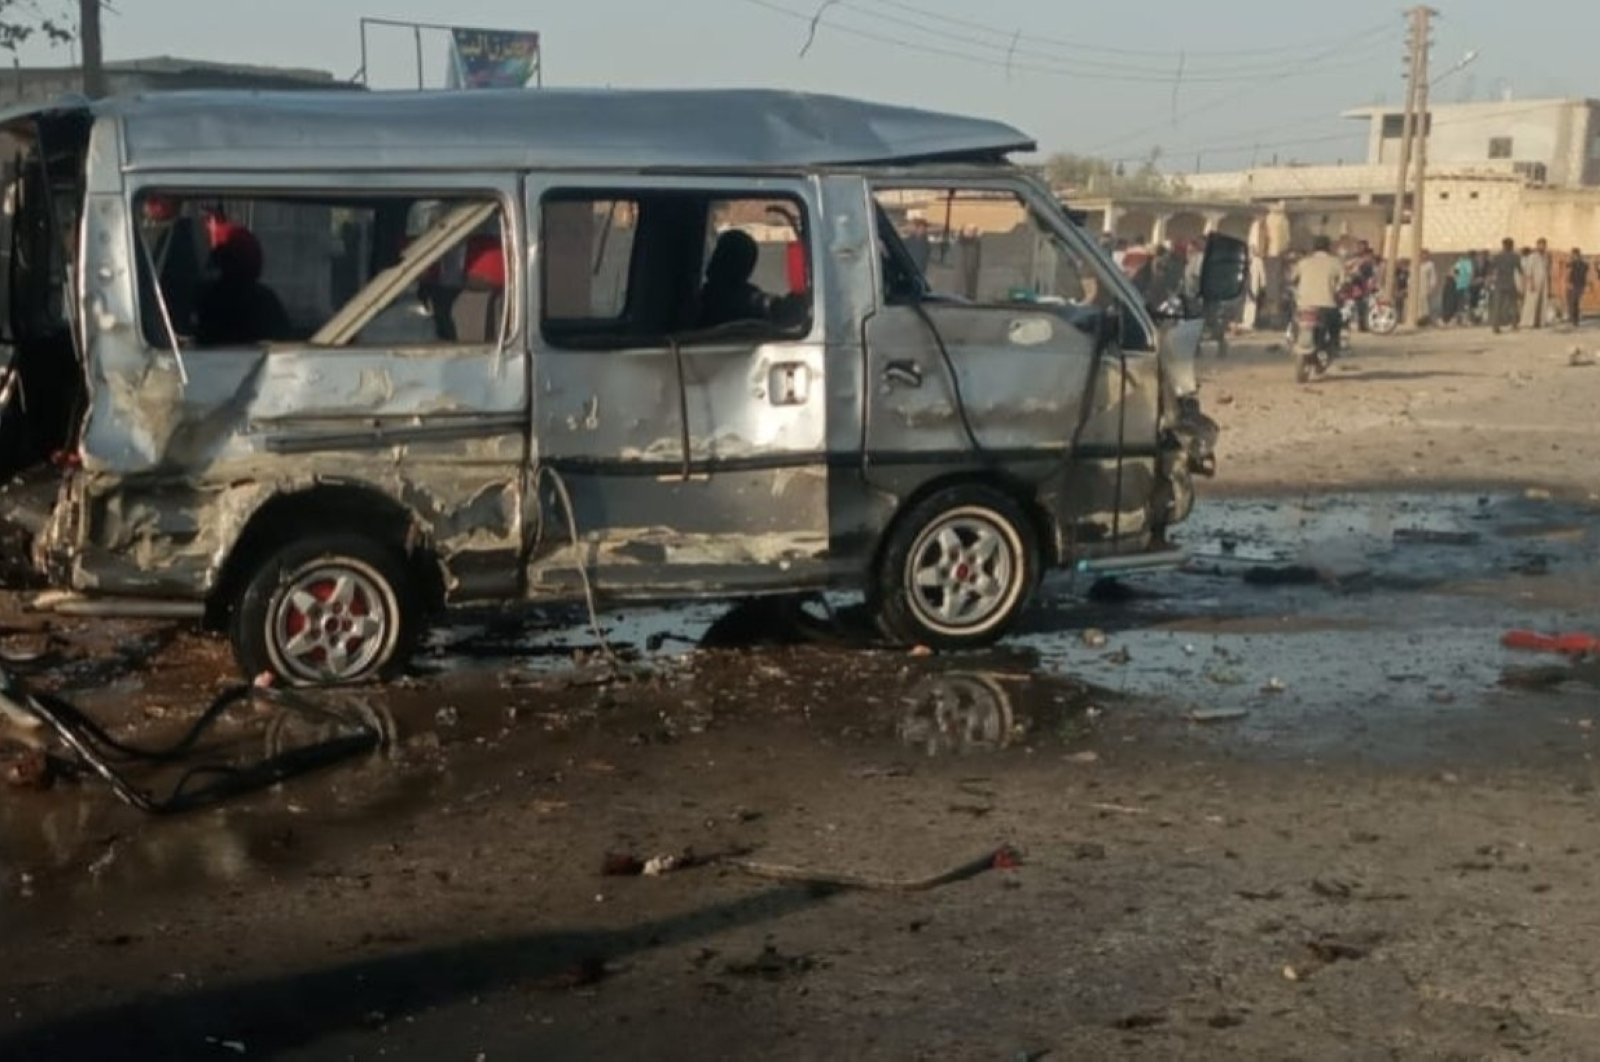 Terror attack in Syria's Ras al-Ain kills 2, wounds 12 | Daily Sabah